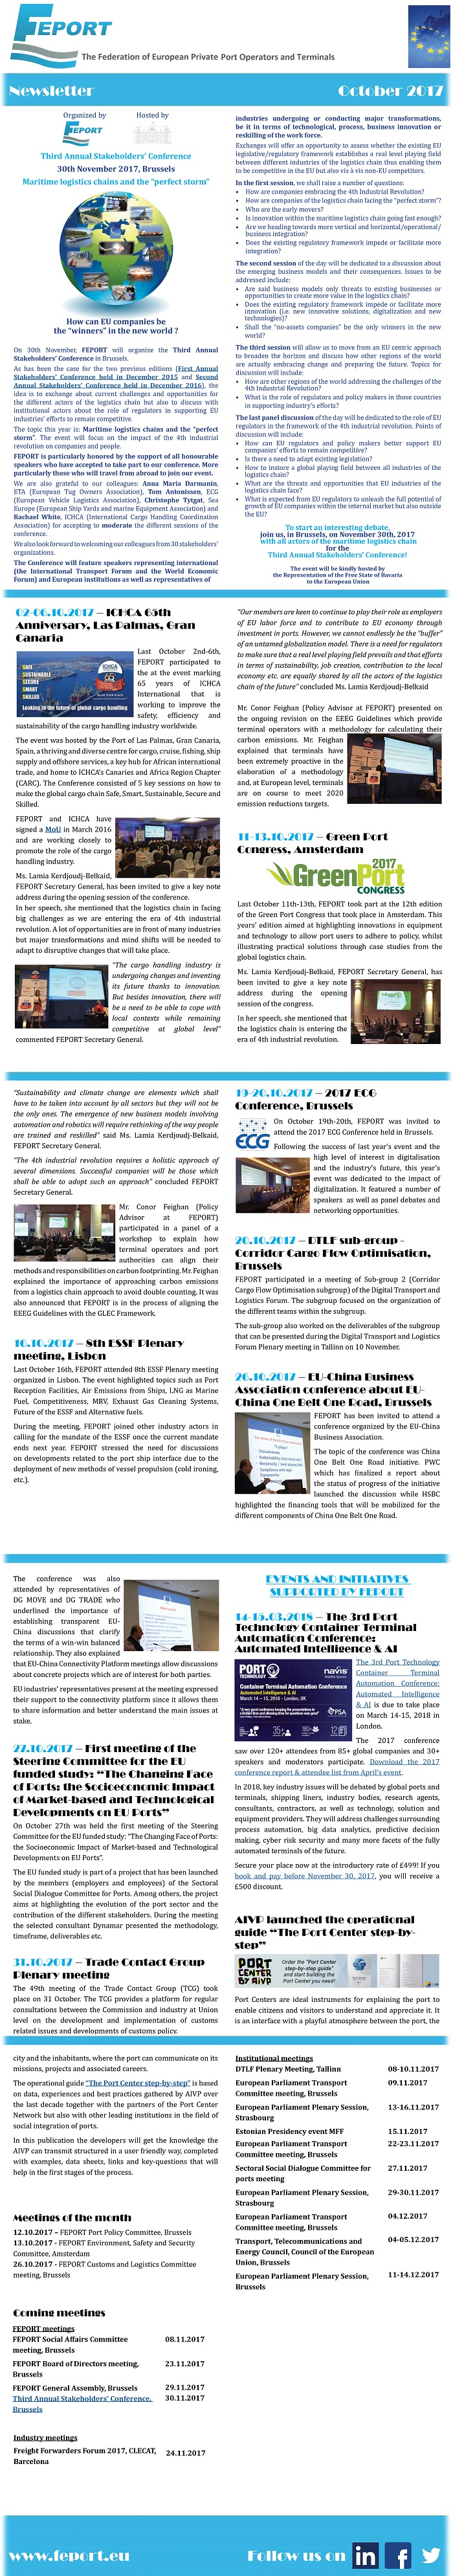 FEPORT External Newsletter October 2017alls